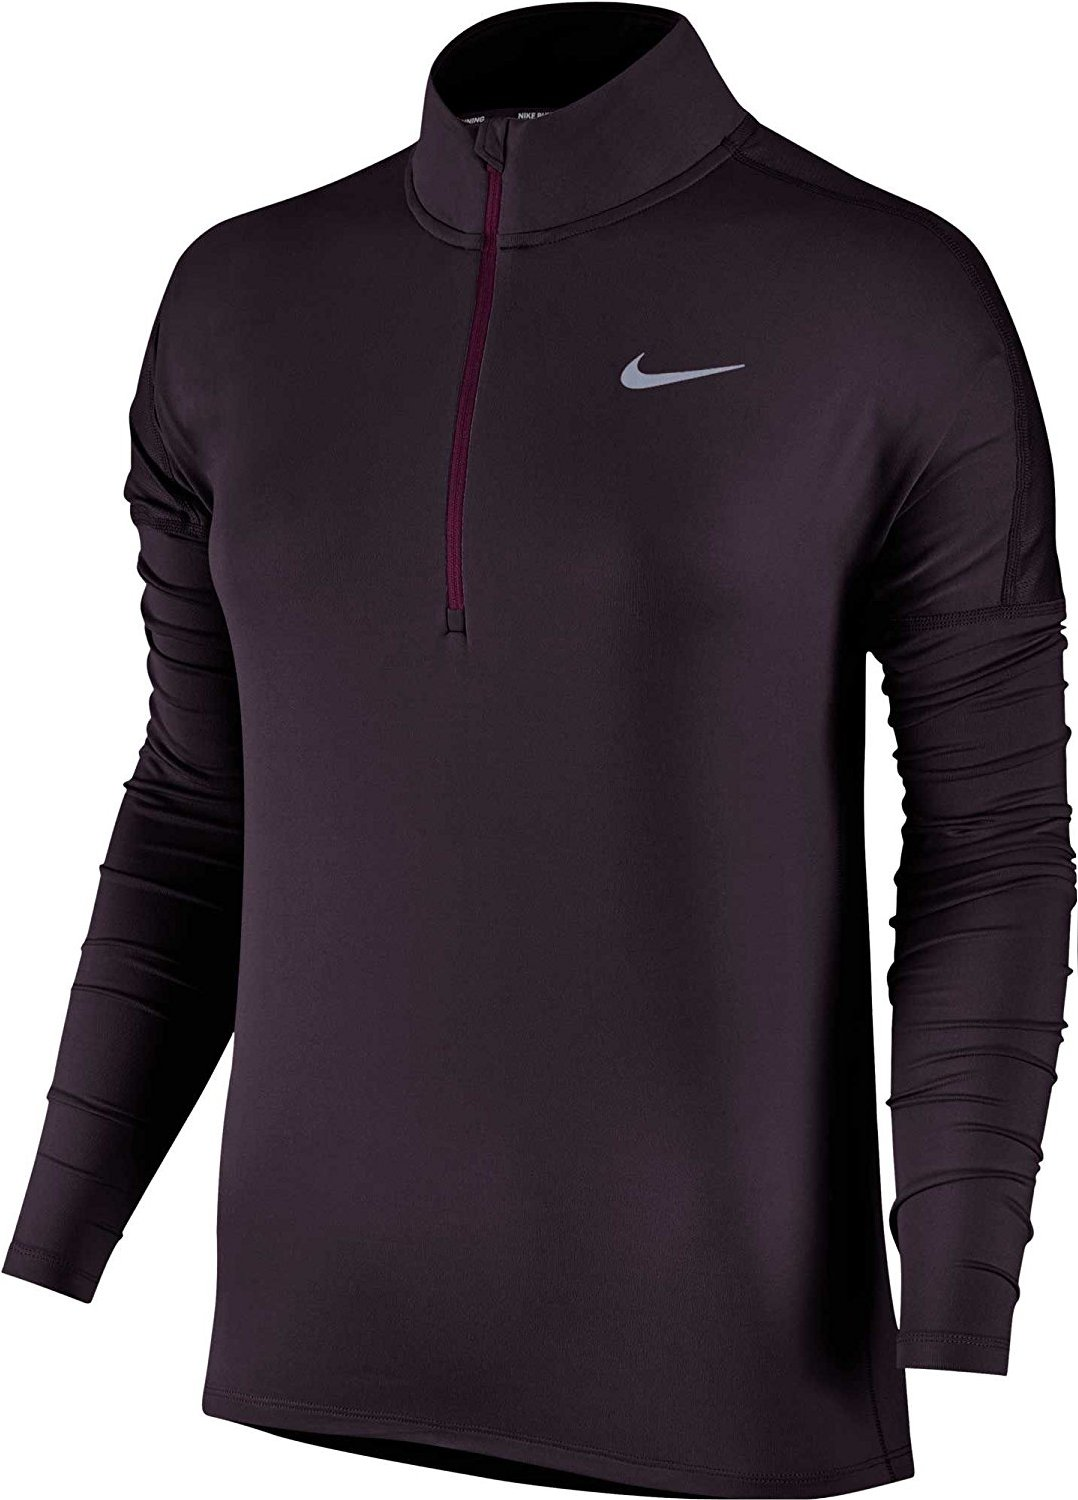 Nike Women's Dry Element Running Top Port Wine Size Small